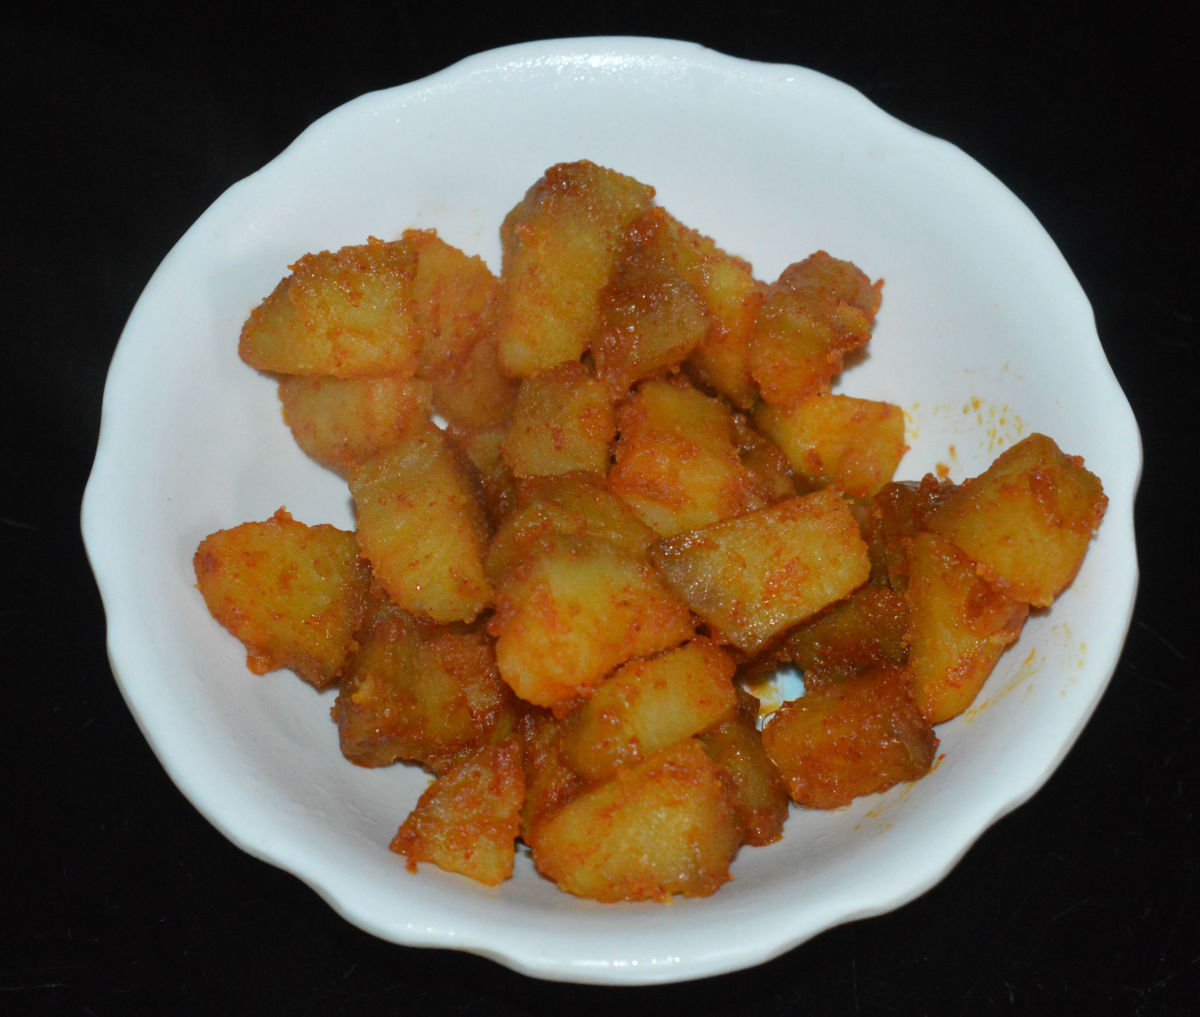 Cooked spicy potatoes